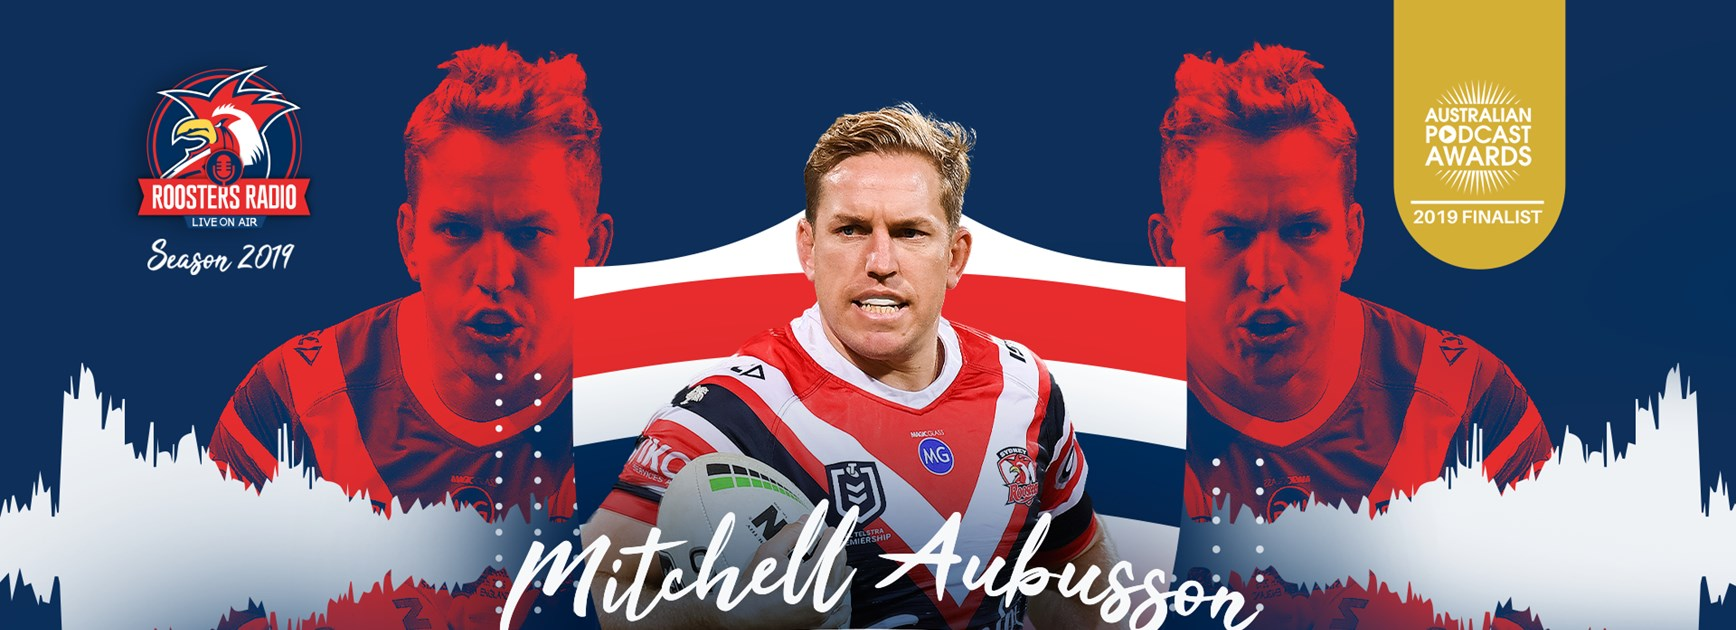 Roosters Radio | Mitchell Aubusson